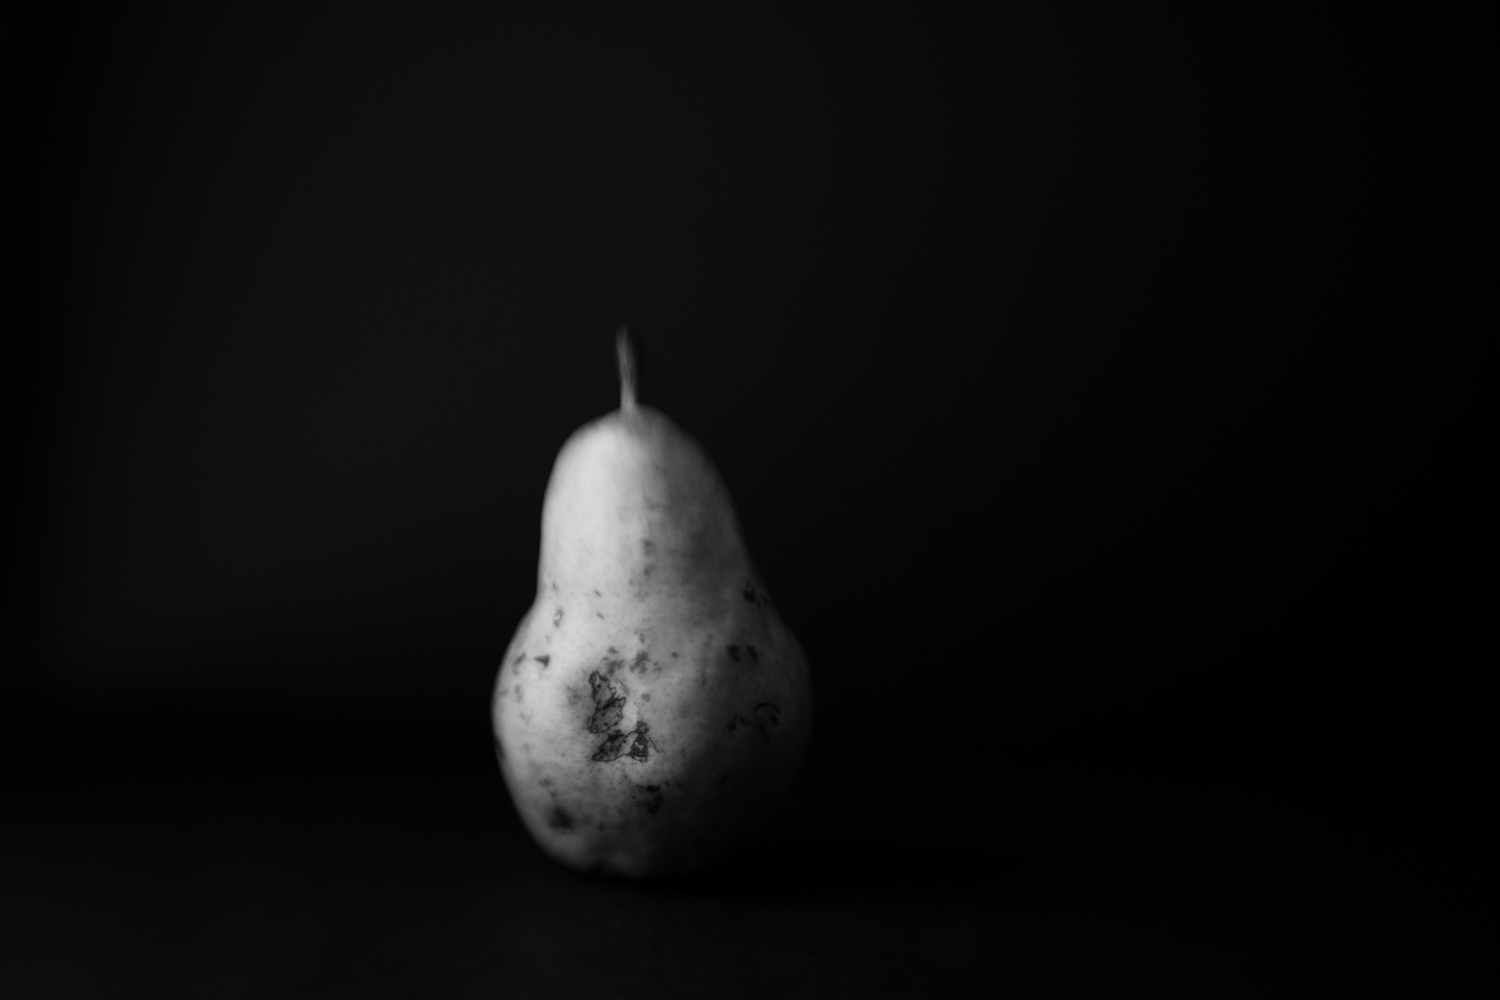 black and white photo of a pear